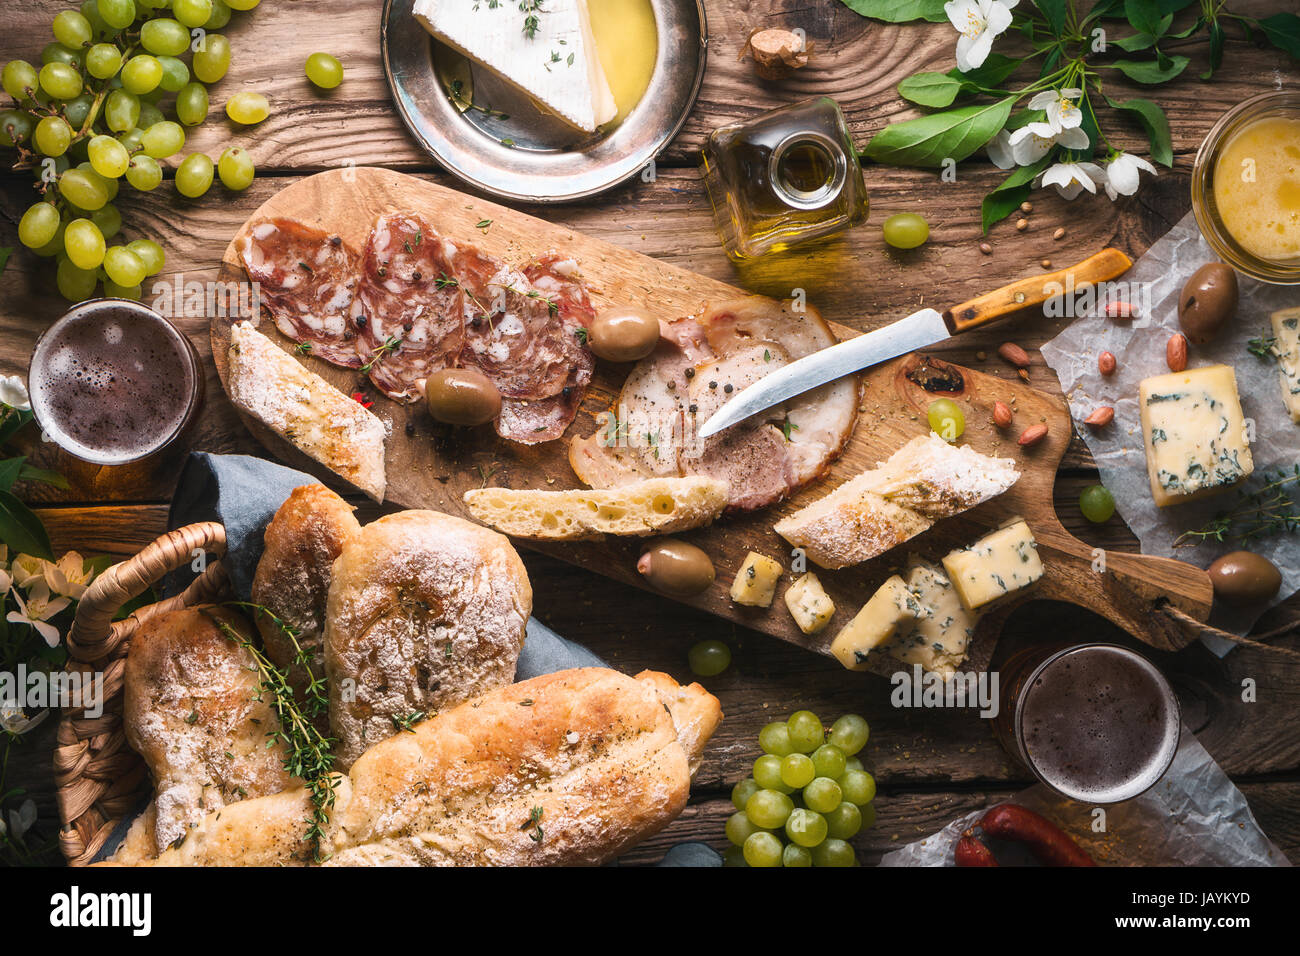 Homemade bread, cheese, olives, grapes and flowers on old boards horizontal - Stock Image